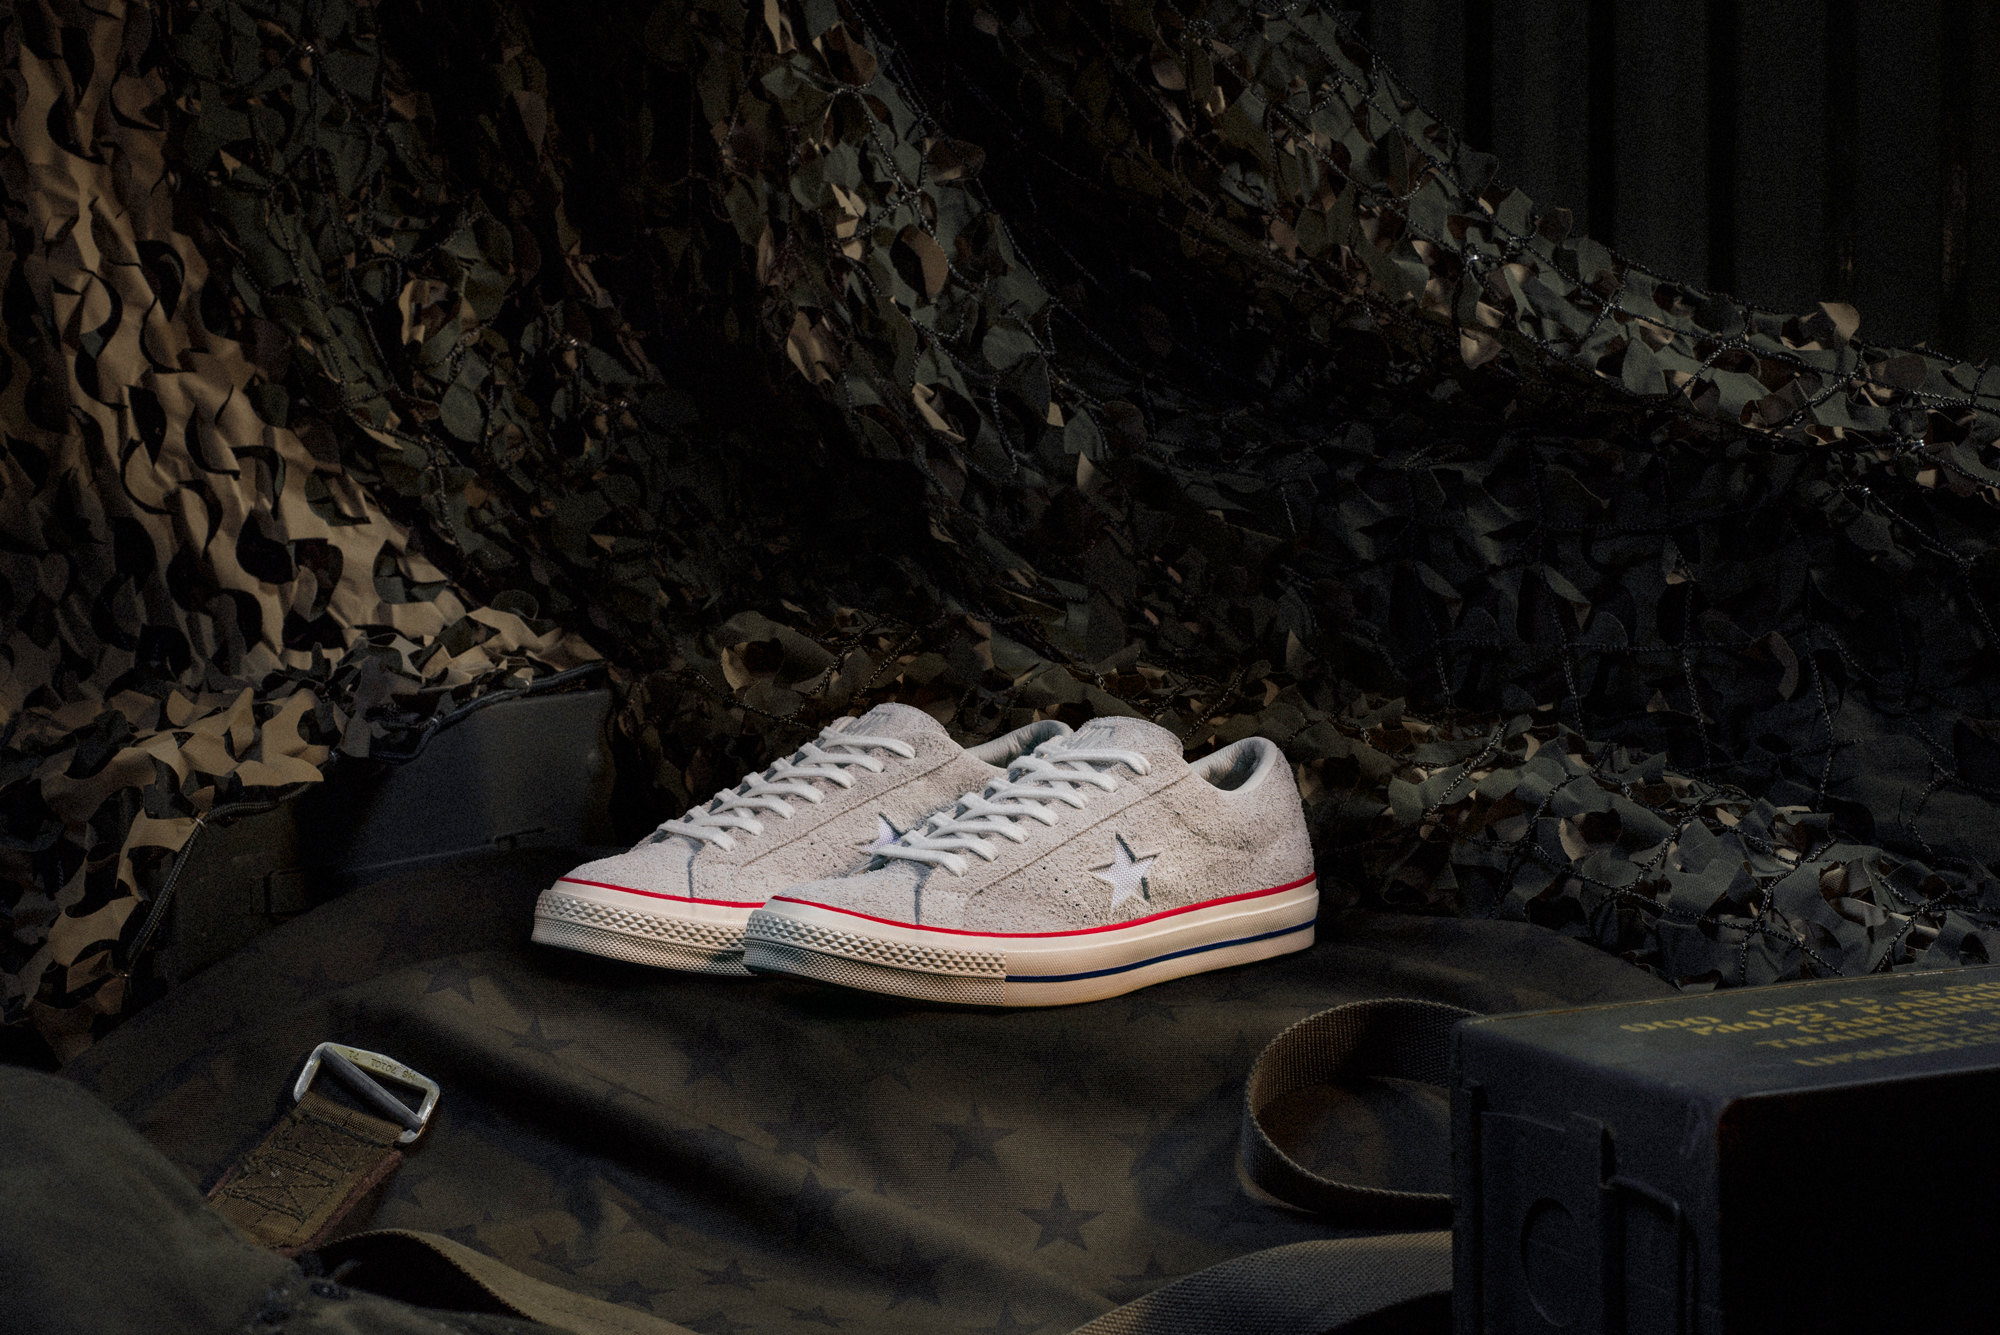 converse-one-star-undftd-06